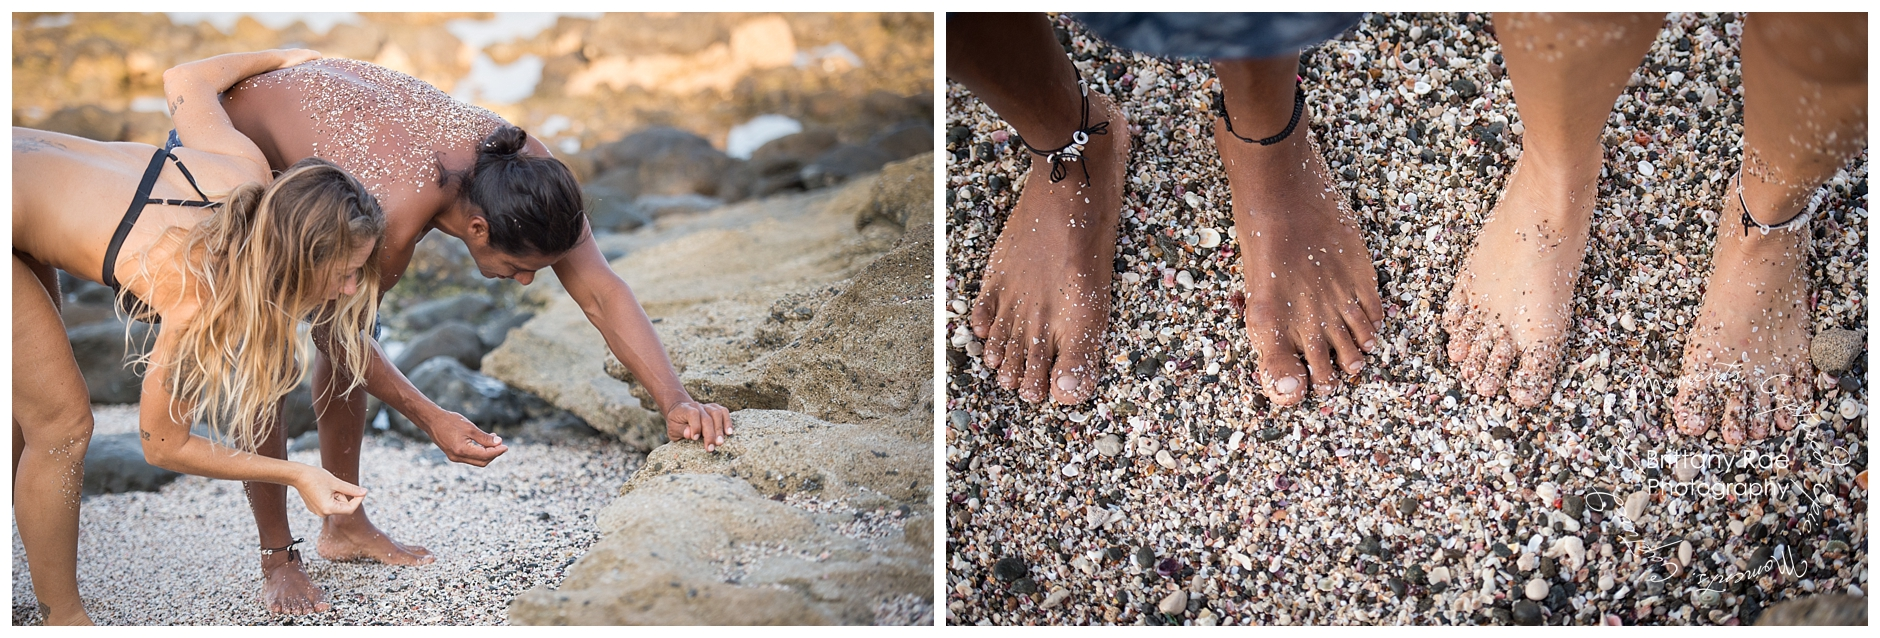 Sexy Day After Portraits by Costa Rica Wedding Photographers - Volcanic Rock Beach and Shells